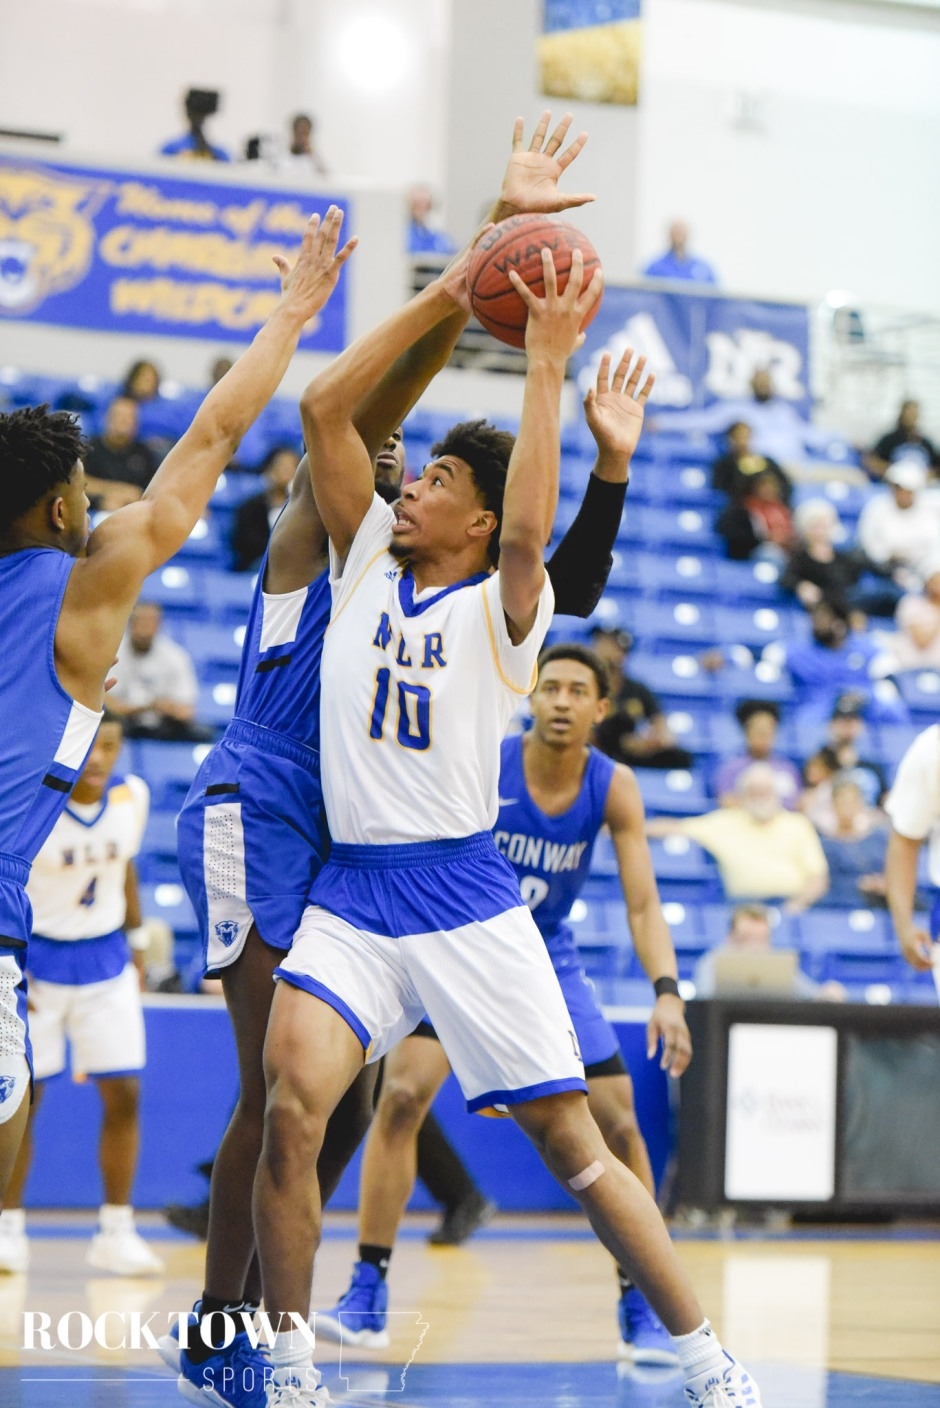 Conway_NLR_bball19(i)-43